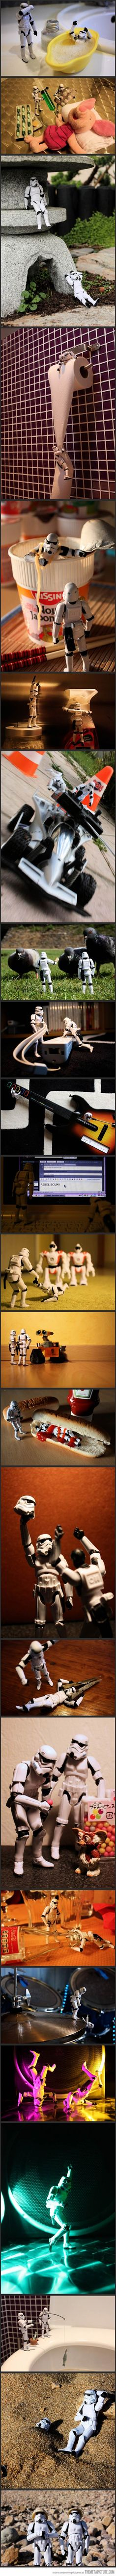 Stormtroopers. im not a super huge fan of Star Wars but this was just too funny not to pin.